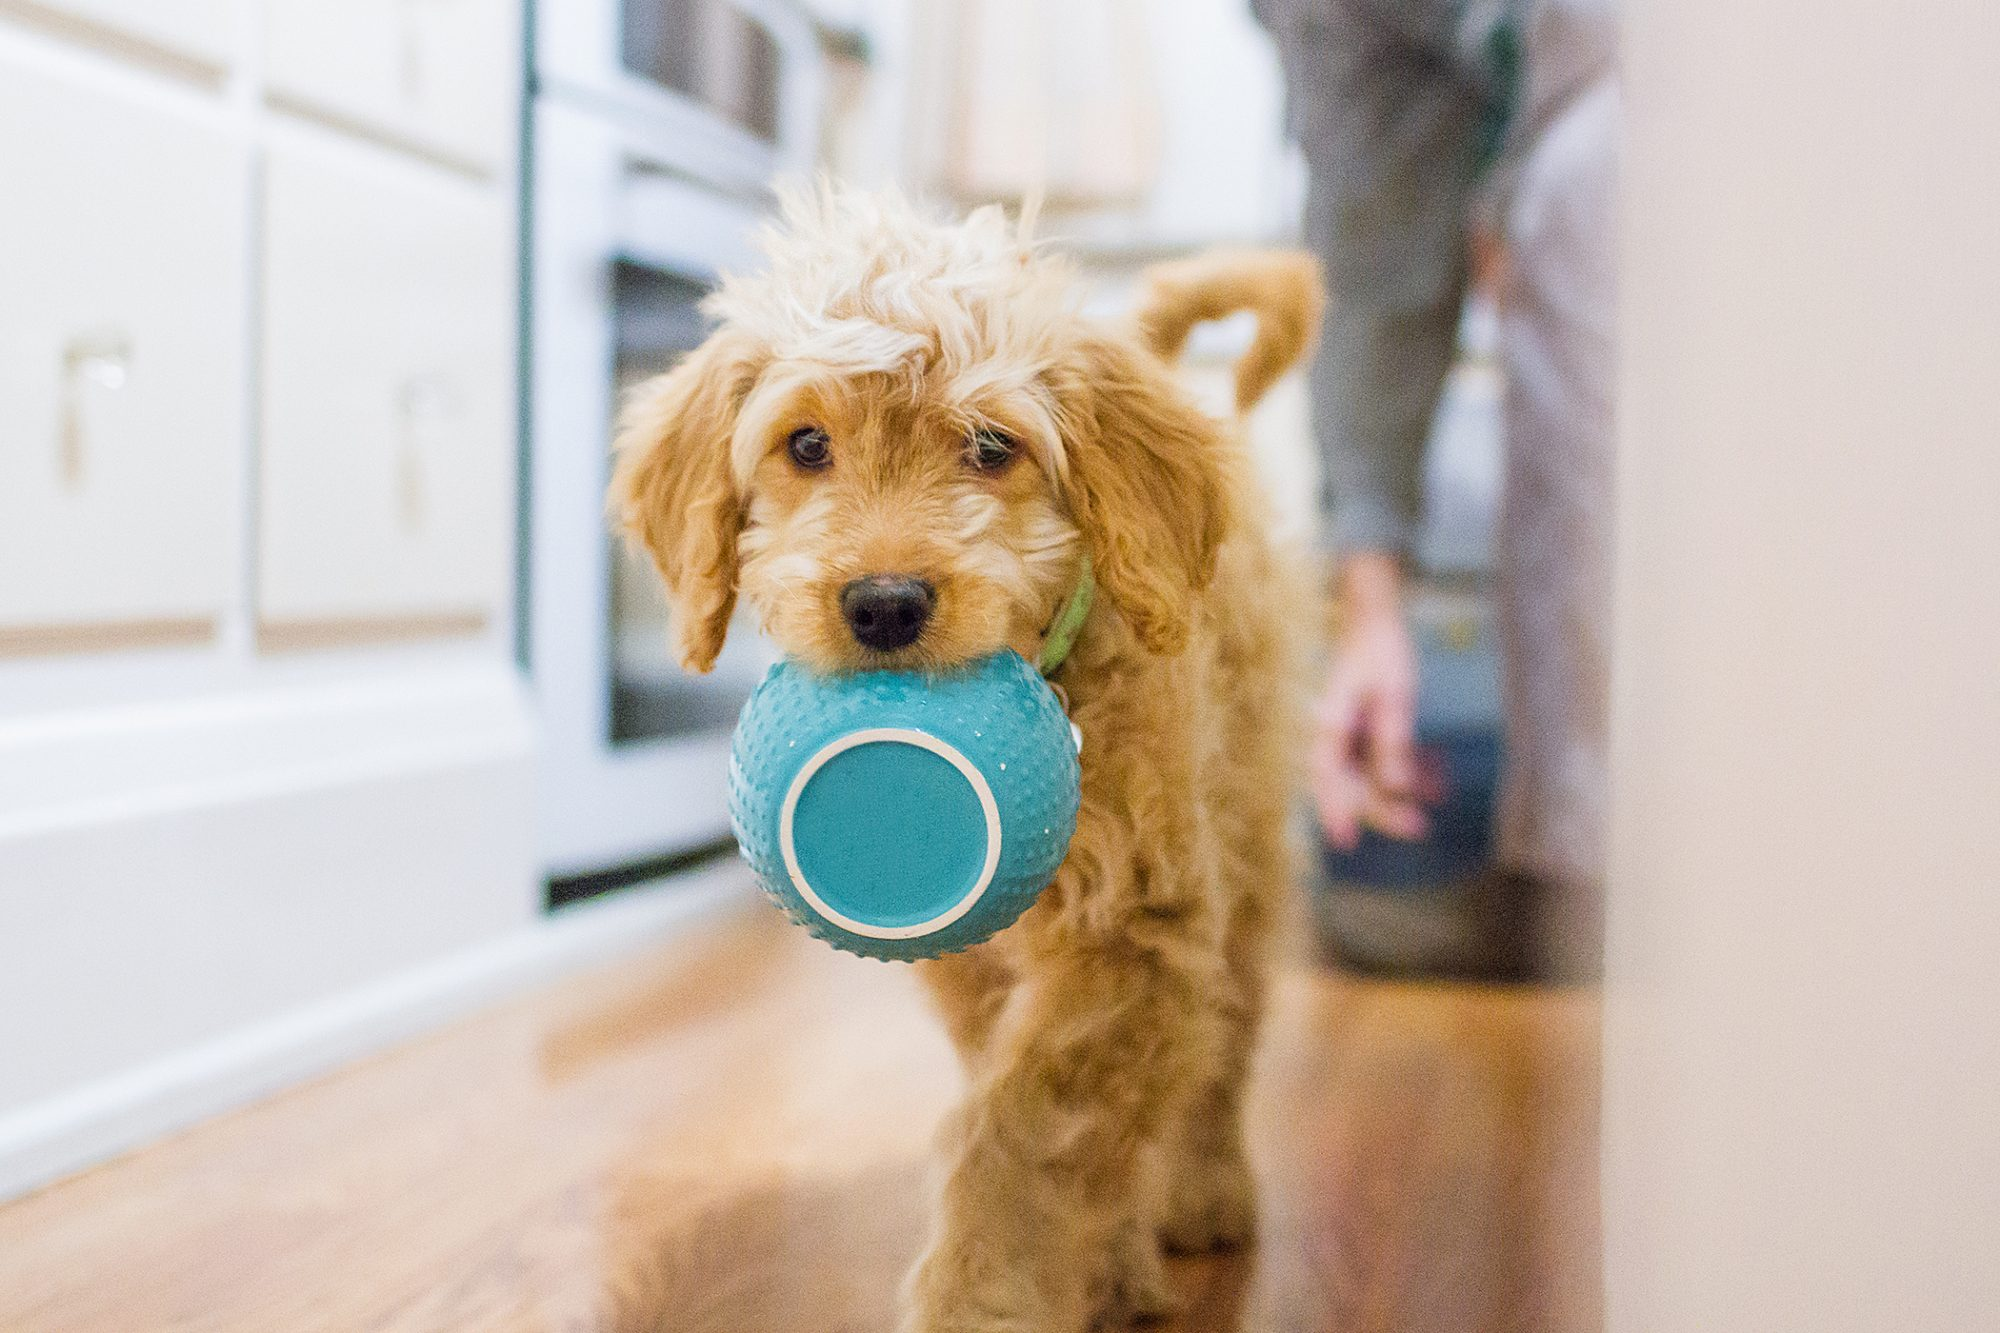 Goldendoodle carrying a blue bowl in his mouth